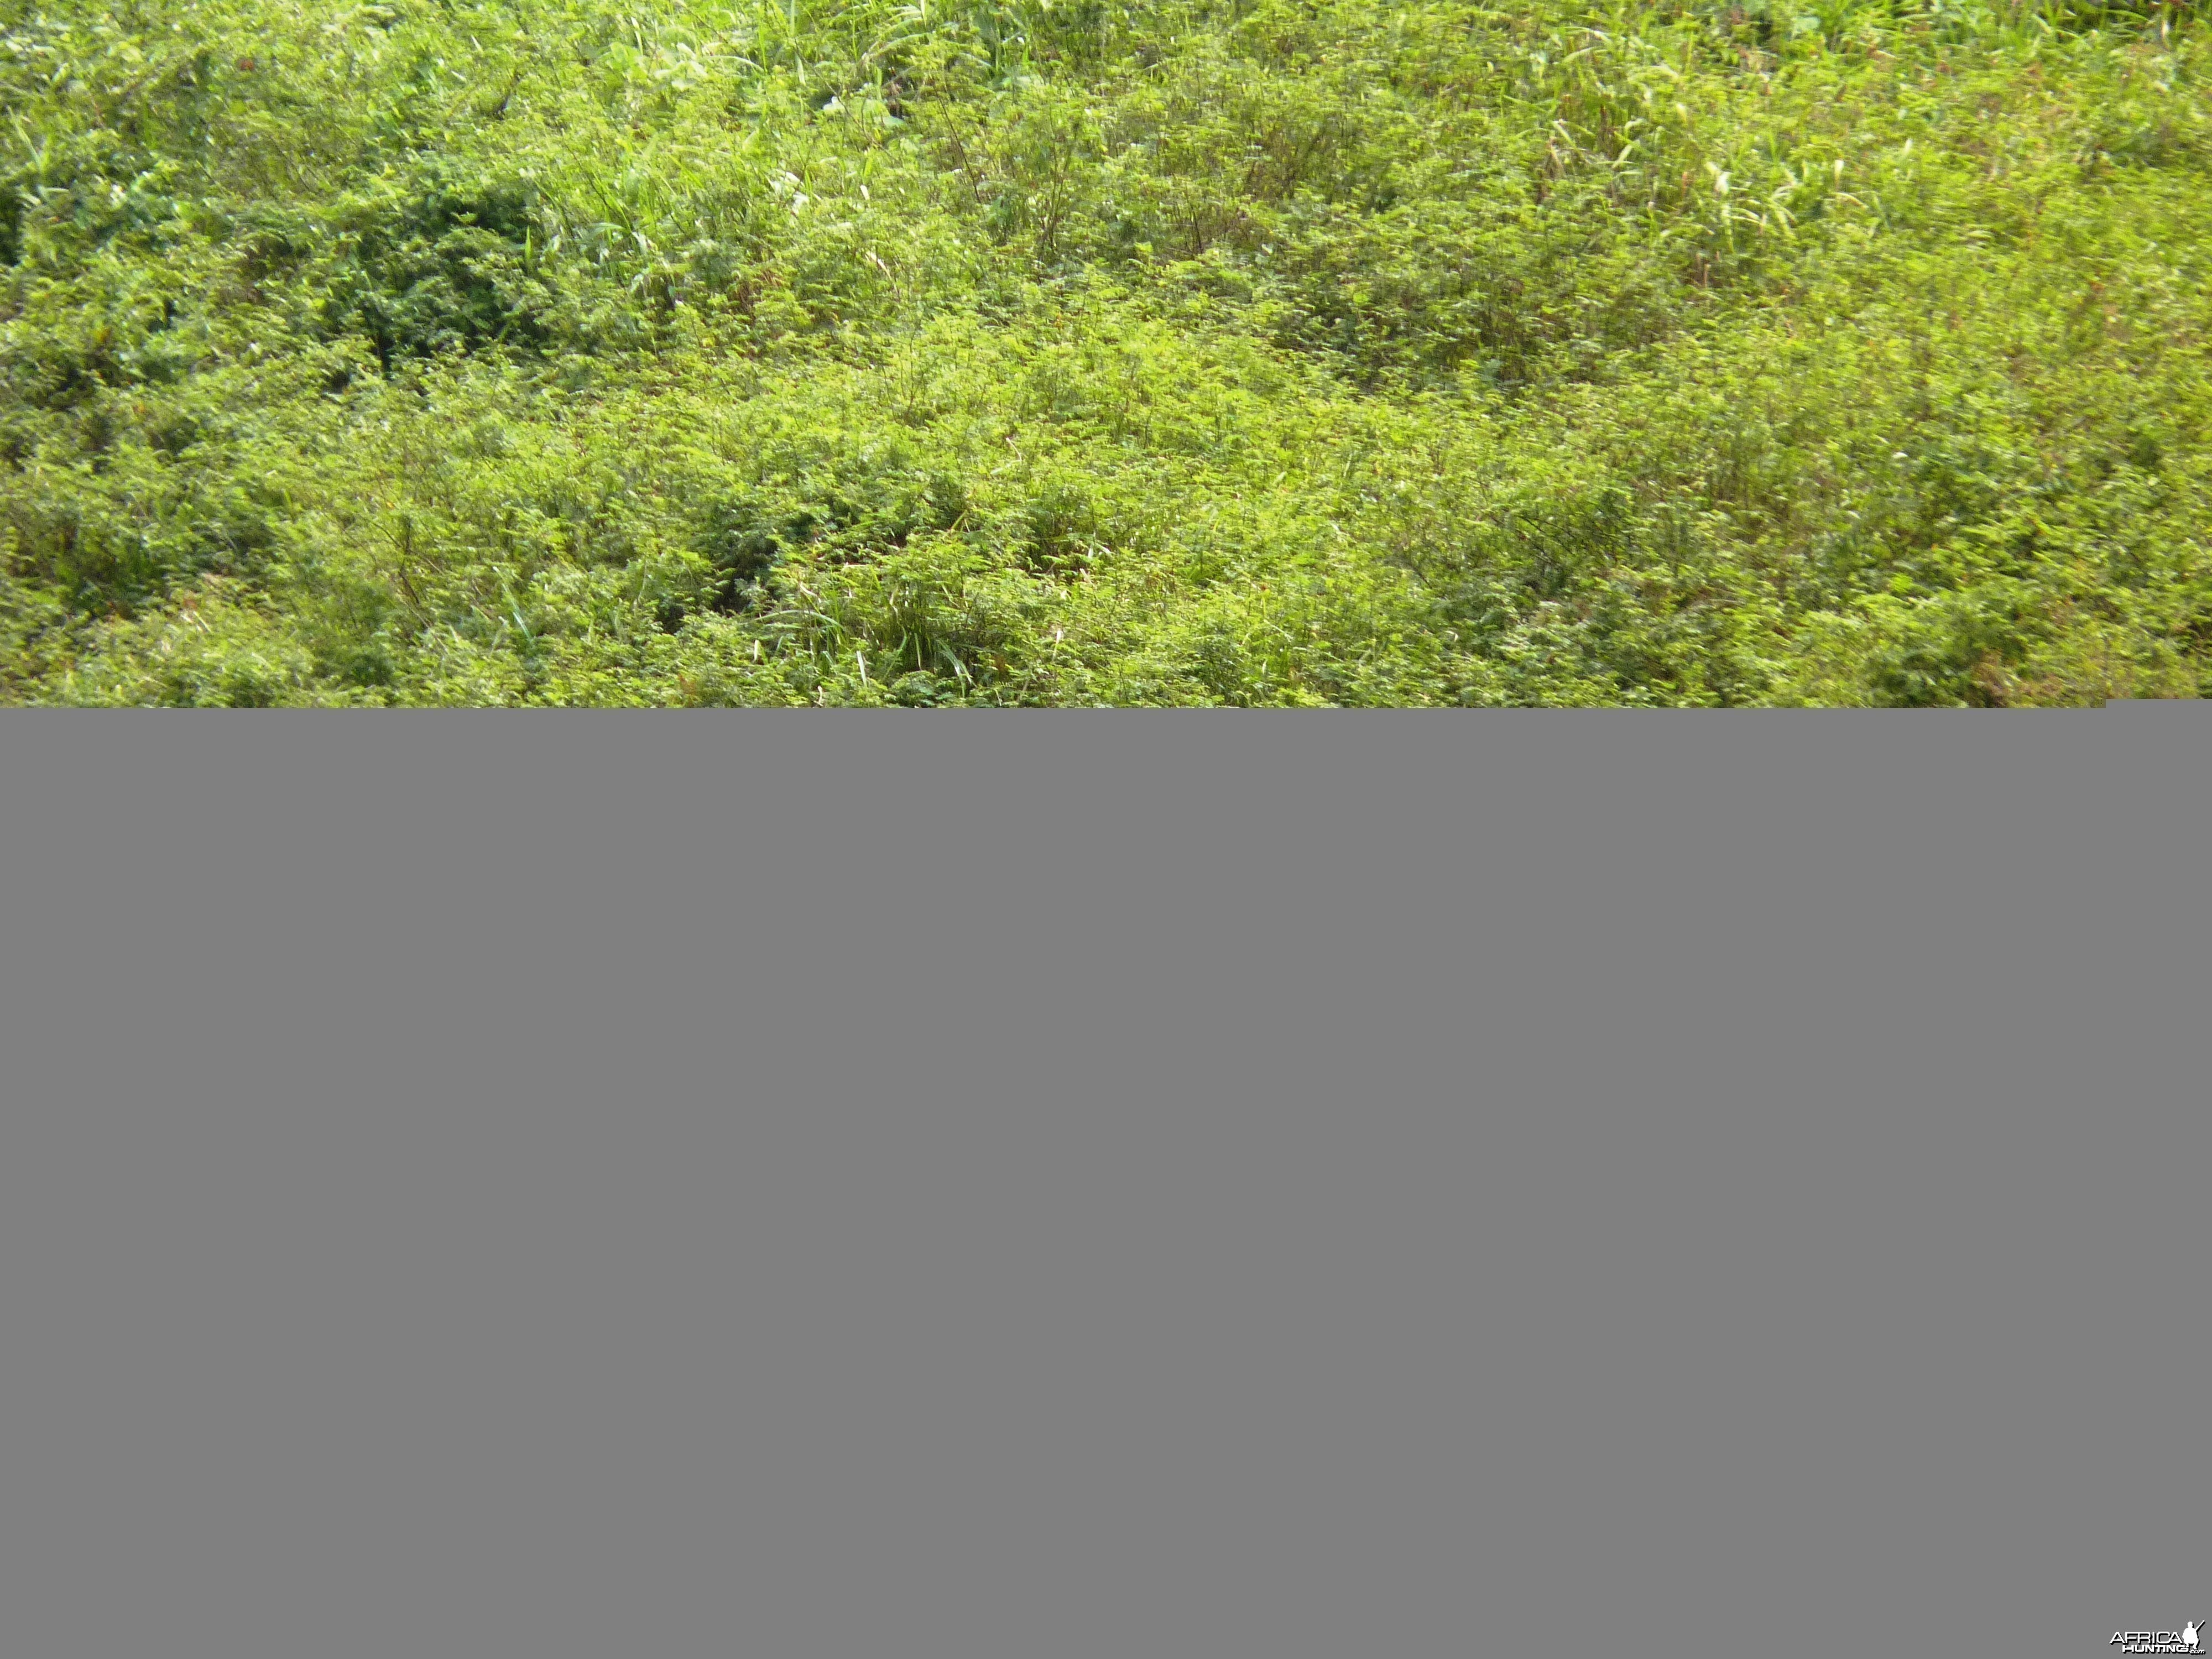 Buffalo in Central African Republic